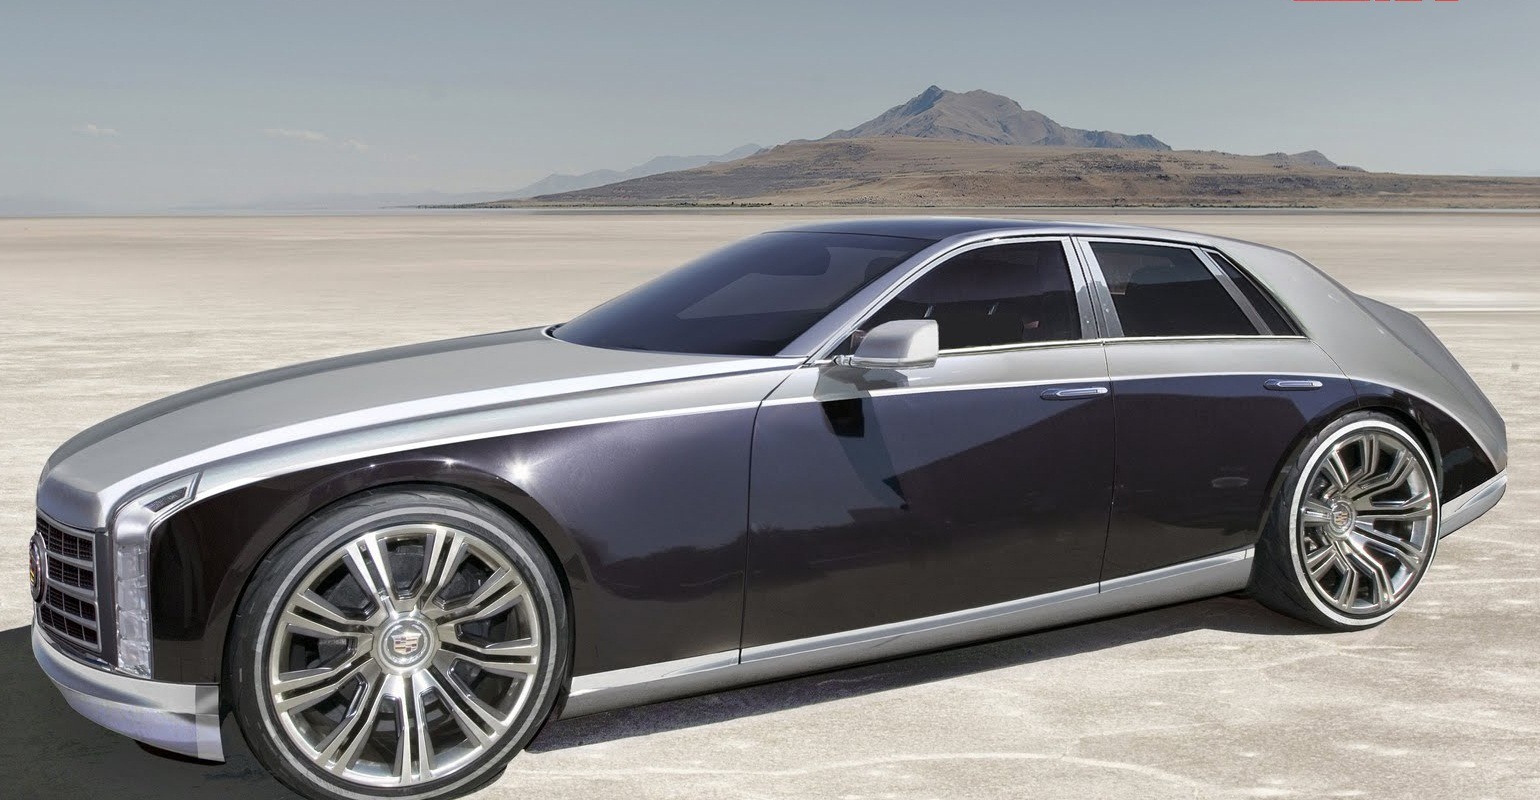 47 The Best 2020 Cadillac Deville Coupe Redesign and Concept